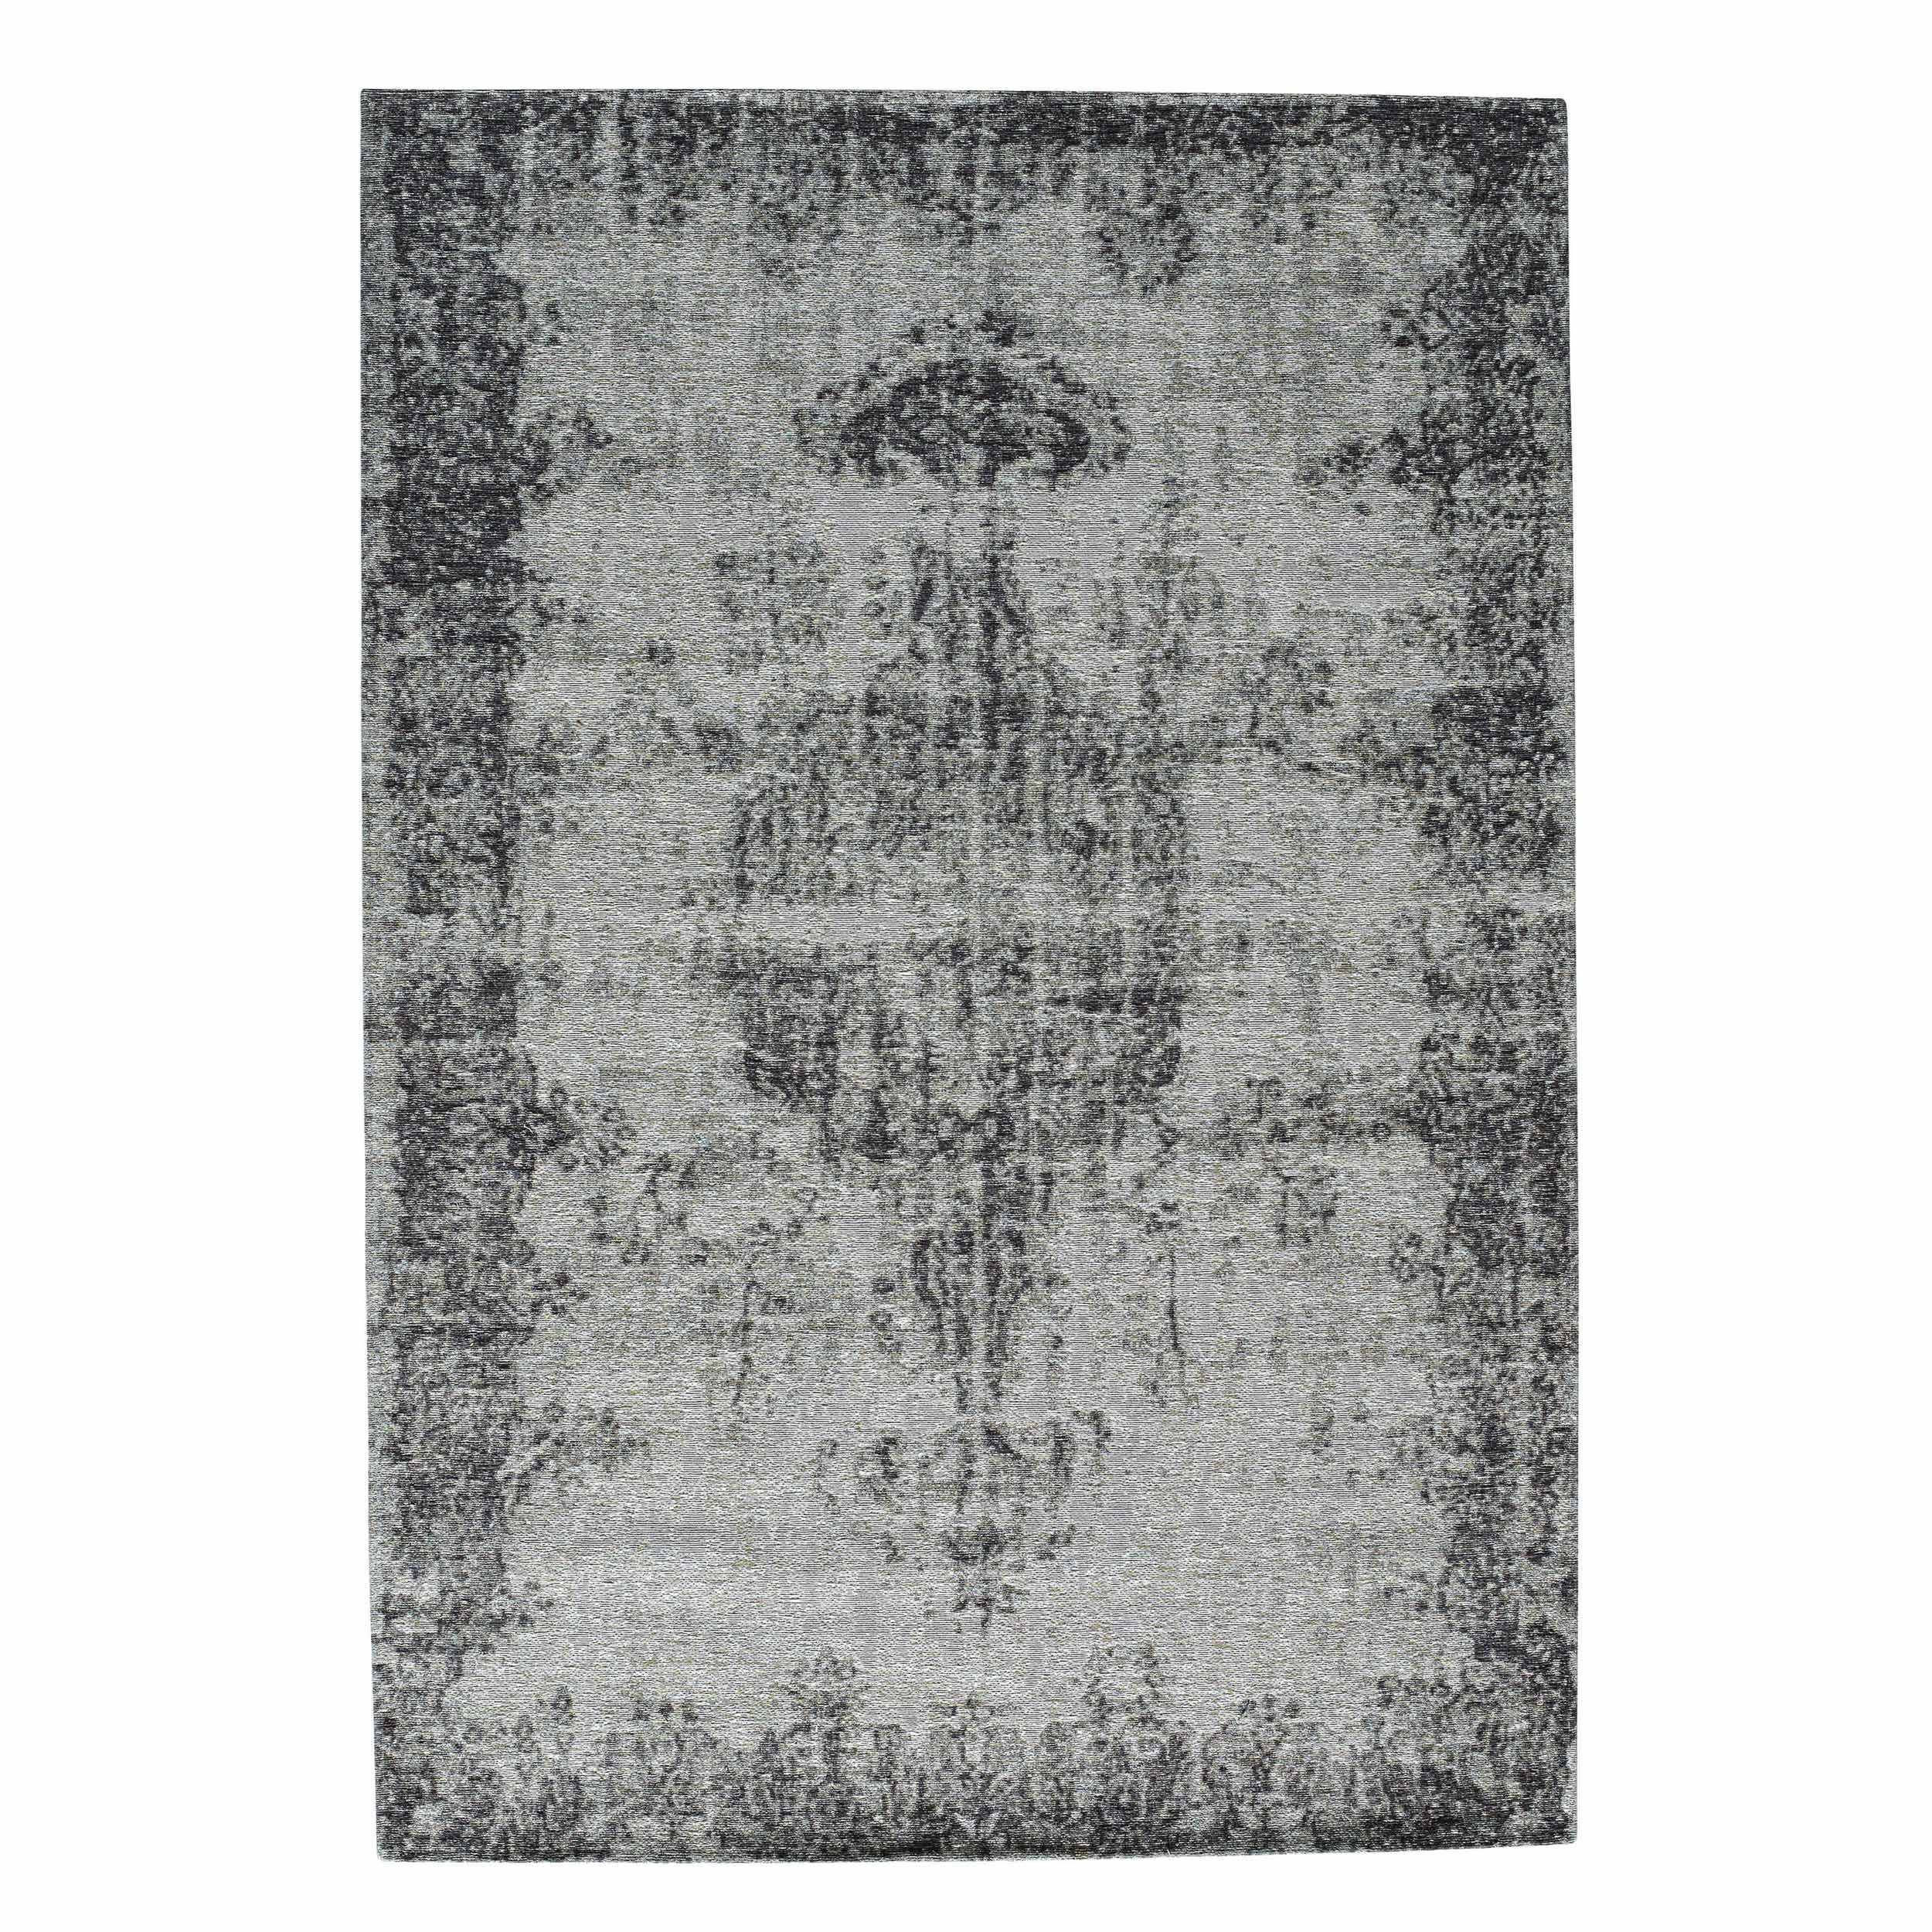 Gris 140x200 Alfombra Gris 140 X 200 Cm In 2019 Deco Rugs Grey London House